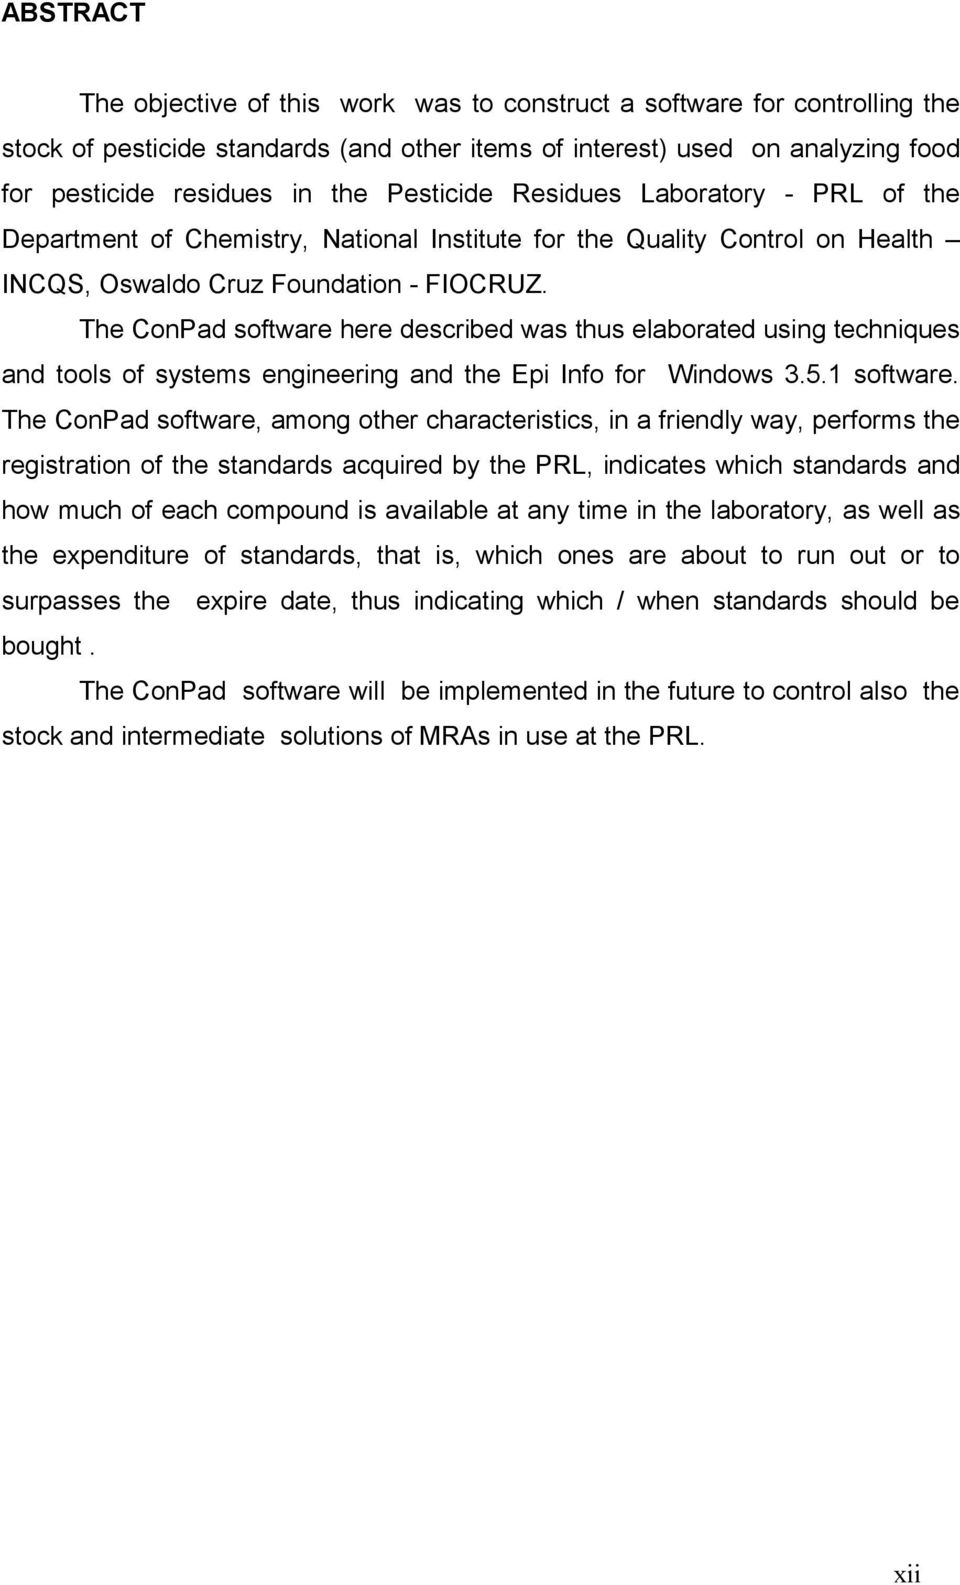 The ConPad software here described was thus elaborated using techniques and tools of systems engineering and the Epi Info for Windows 3.5.1 software.